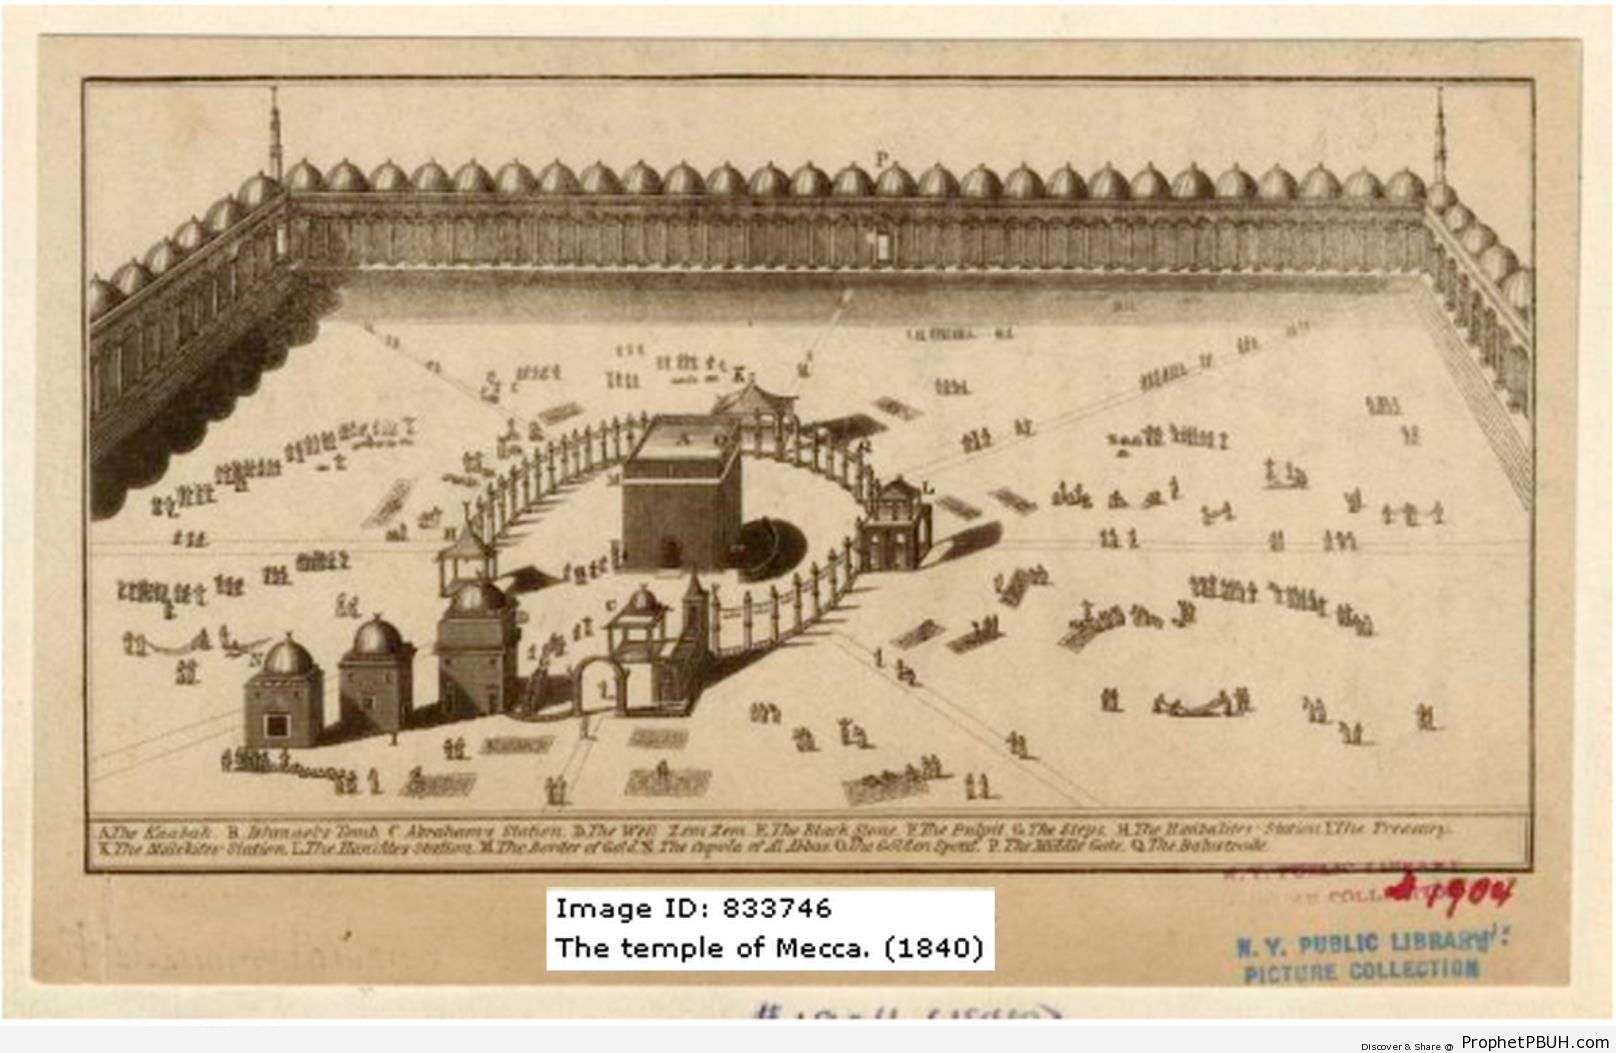 1840 Drawing of Masjid al-Haram - al-Masjid al-Haram in Makkah, Saudi Arabia -Picture